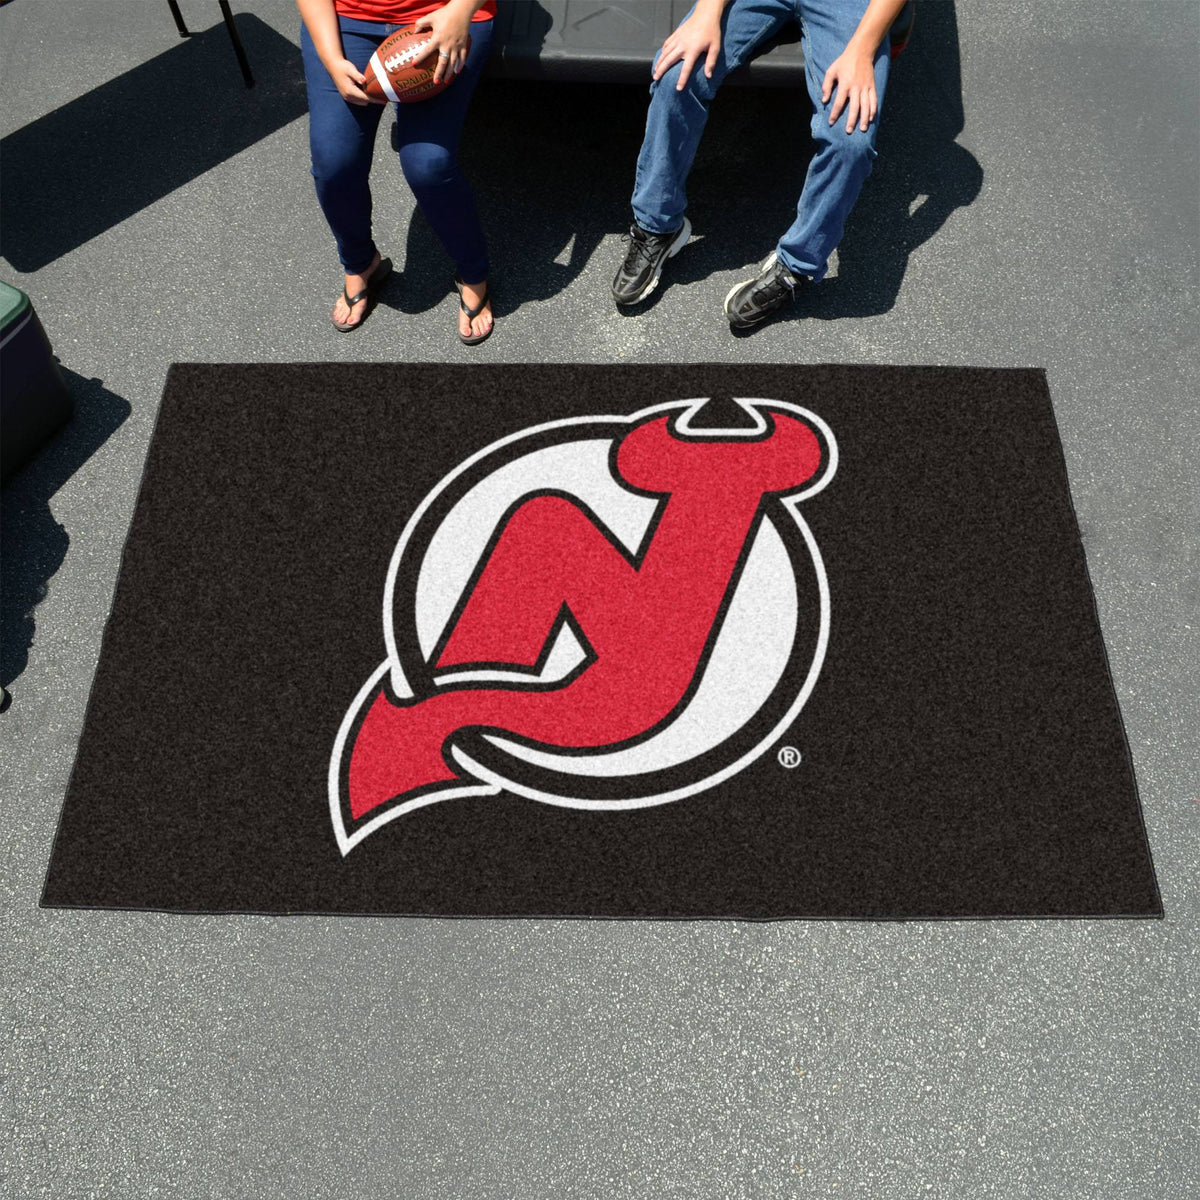 NHL - Ulti-Mat NHL Mats, Rectangular Mats, Ulti-Mat, NHL, Home Fan Mats New Jersey Devils